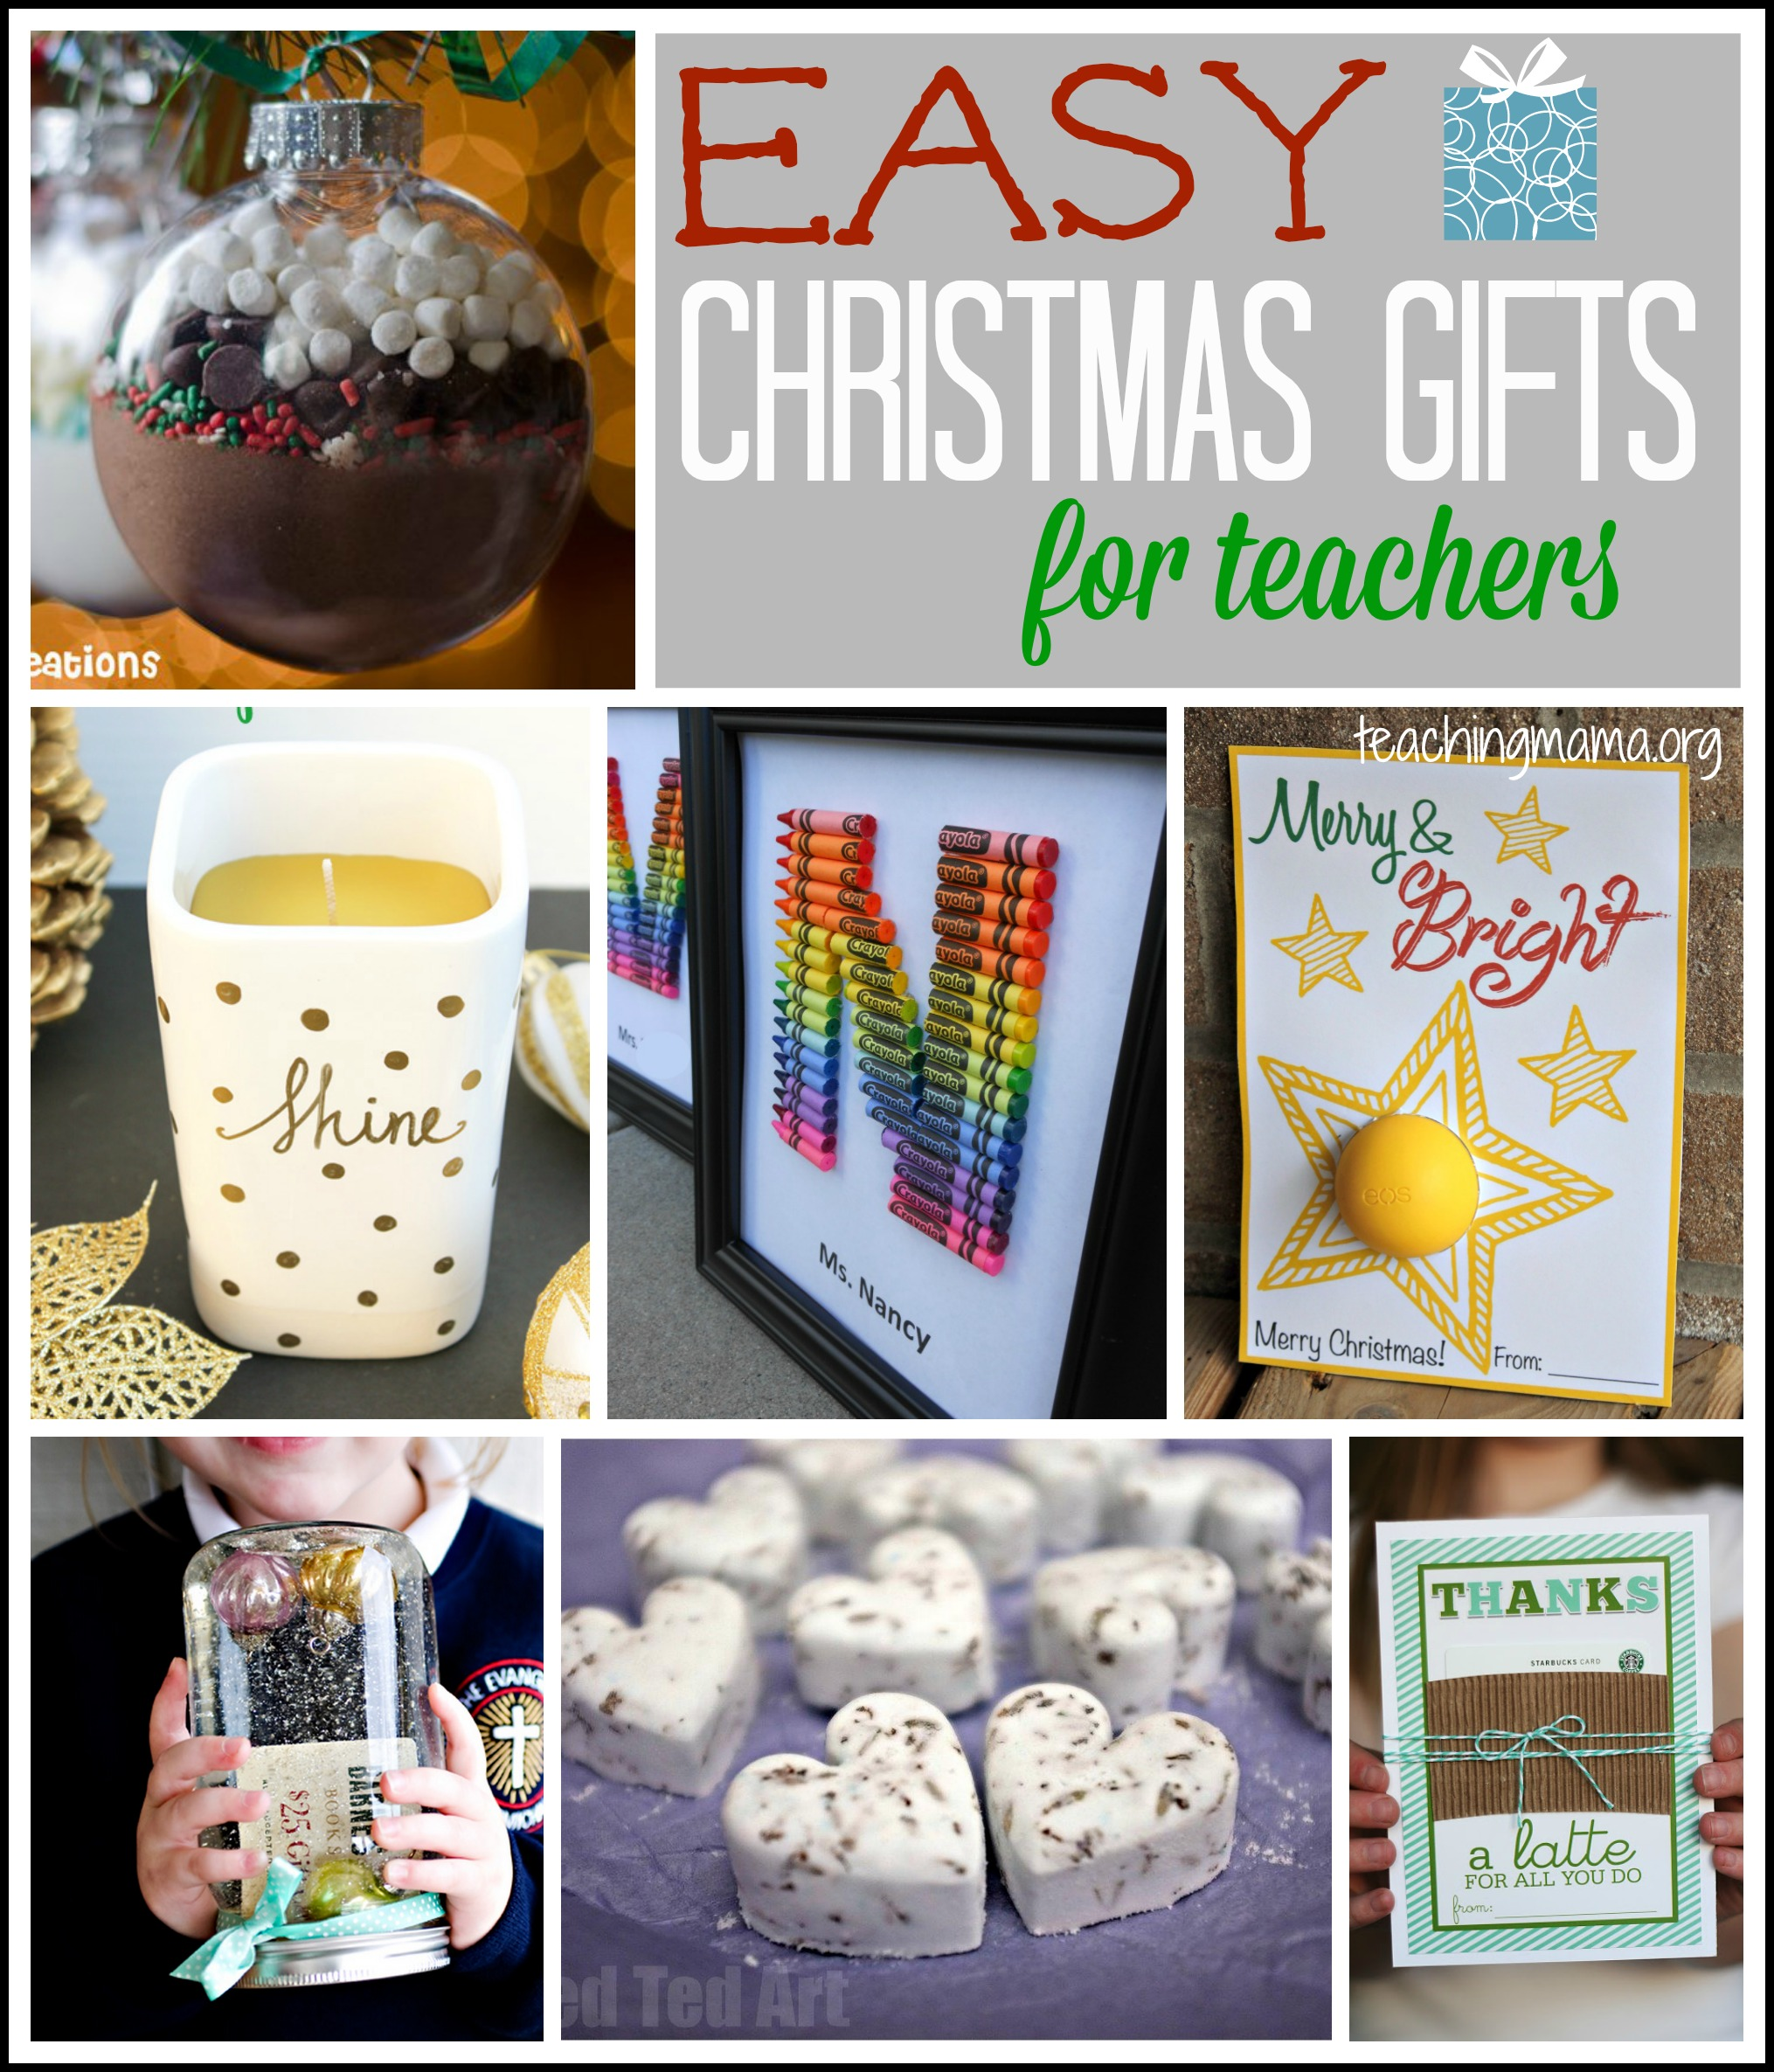 Easy-Christmas-Gifts-for-Teachers.jpg  sc 1 st  Teaching Mama & Easy Christmas Gifts for Teachers